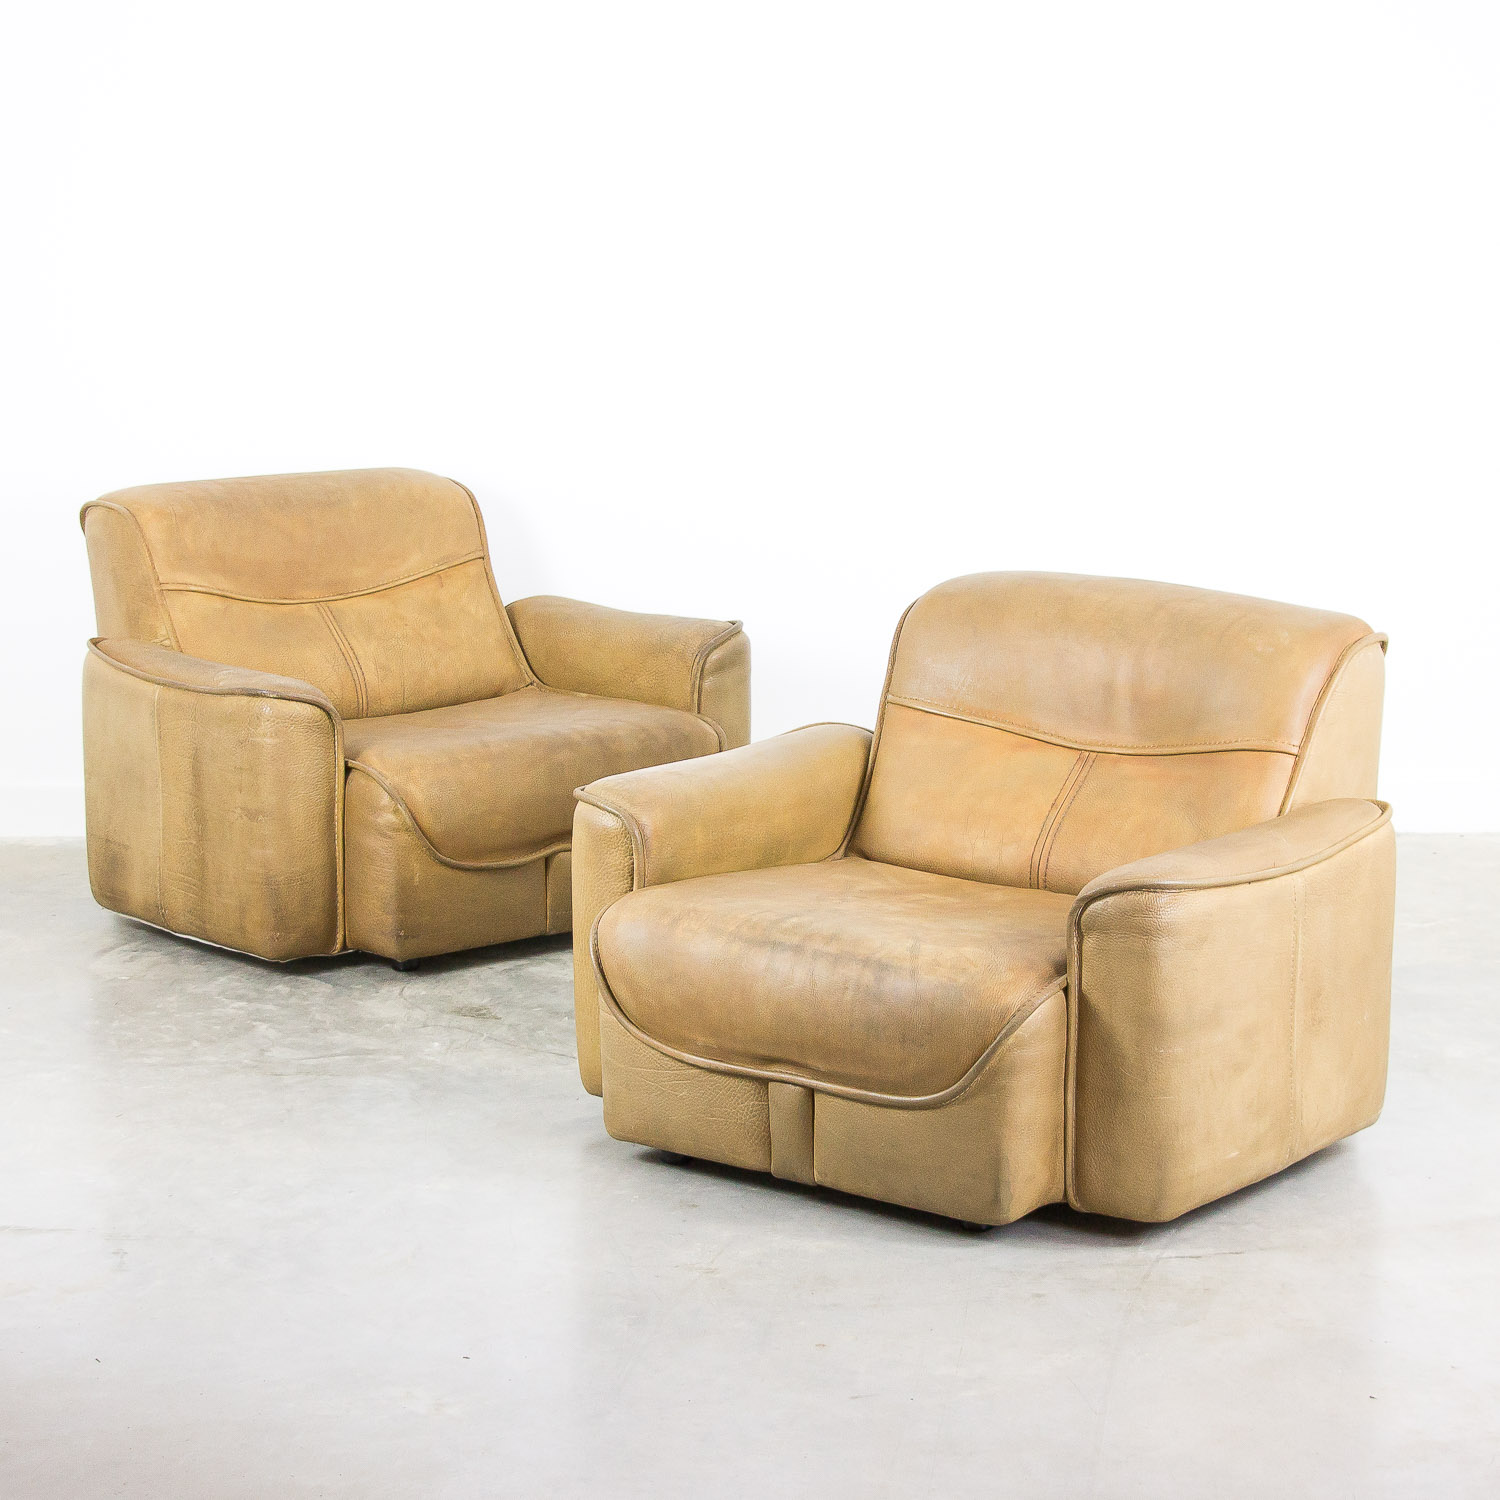 Set of 2 buffalo leather armchairs